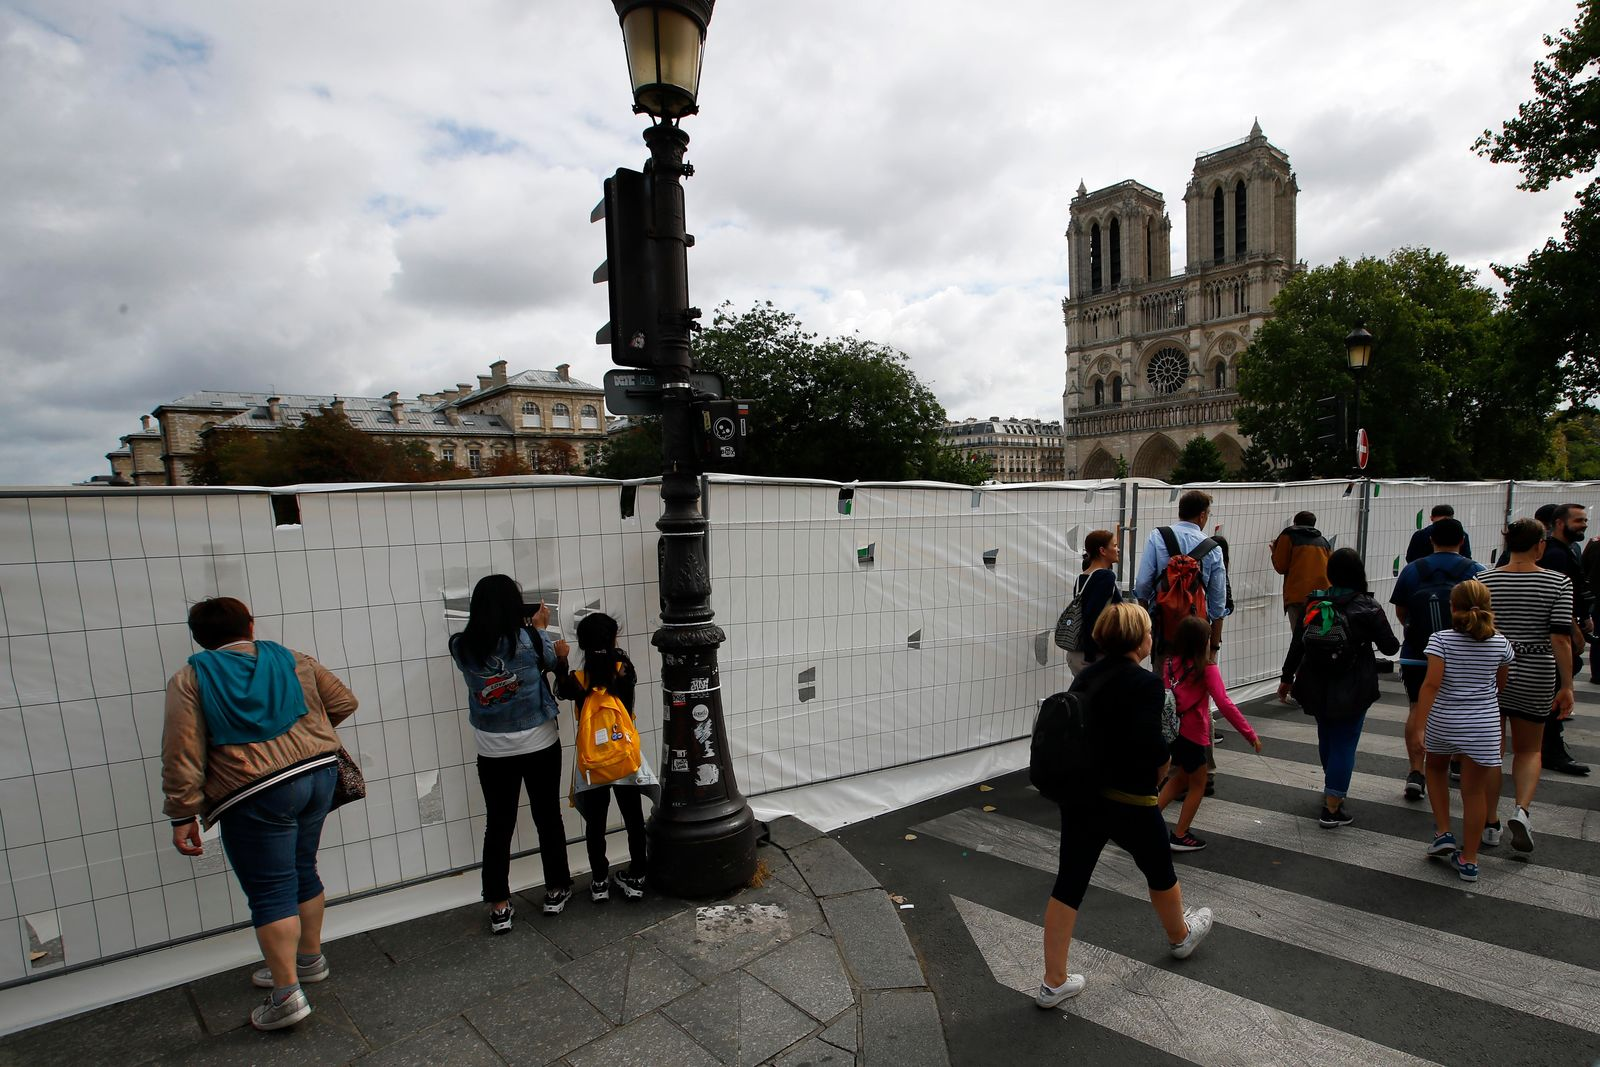 Tourists peer through protection panels securing a perimeter around the Notre Dame Cathedral ahead of the start of a massive lead decontamination in Paris, Thursday, Aug. 15, 2019. (AP Photo/Francois Mori)